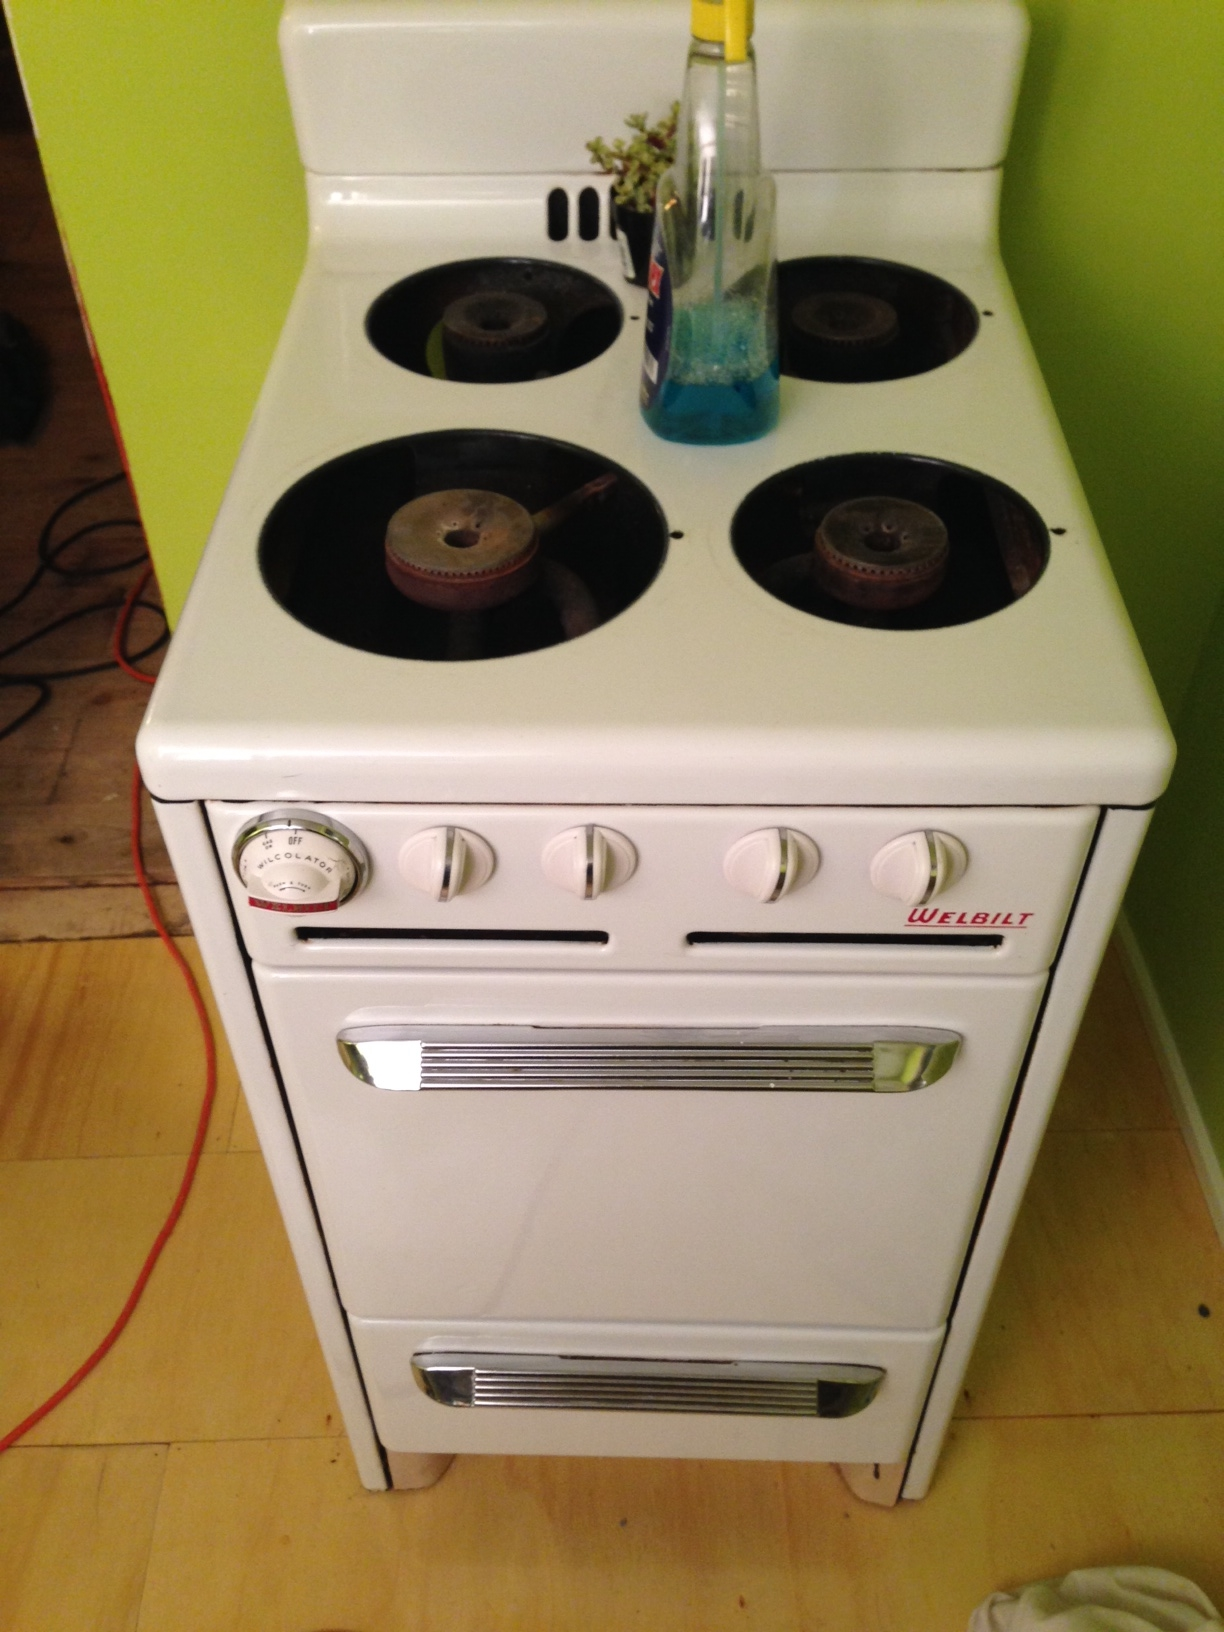 A sweet surprise - perfect condition vintage propane stove. Just needed a little elbow grease!